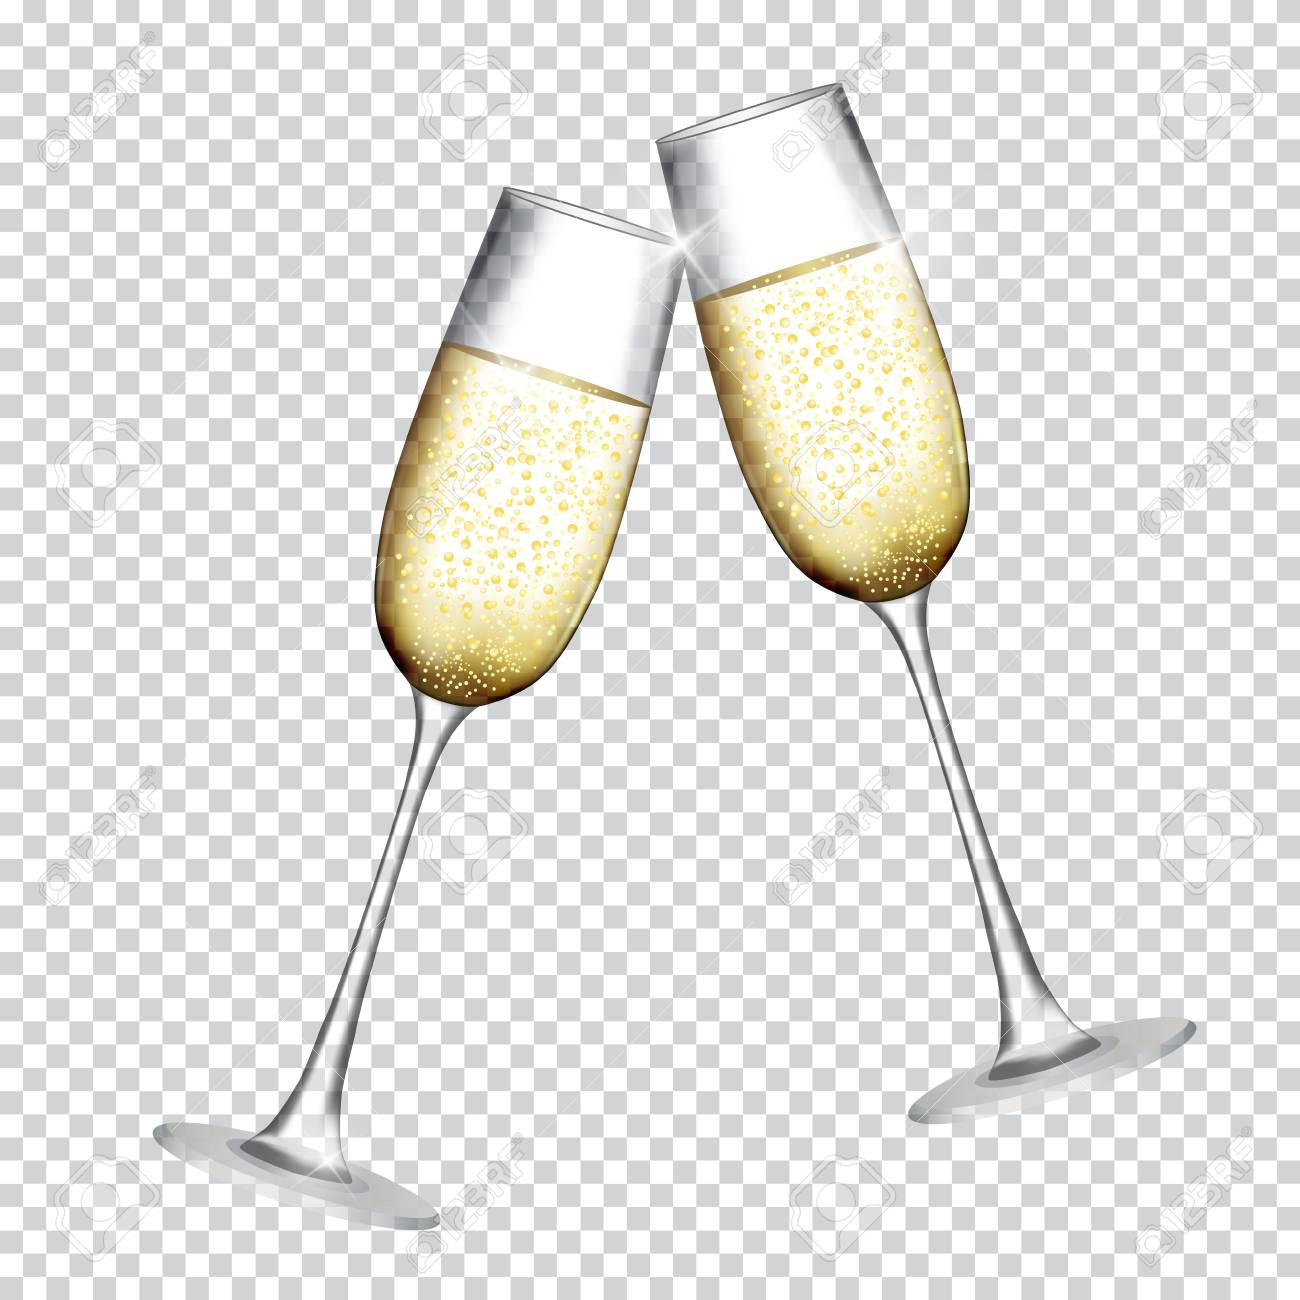 hight resolution of two glass of champagne isolat champagne clipart